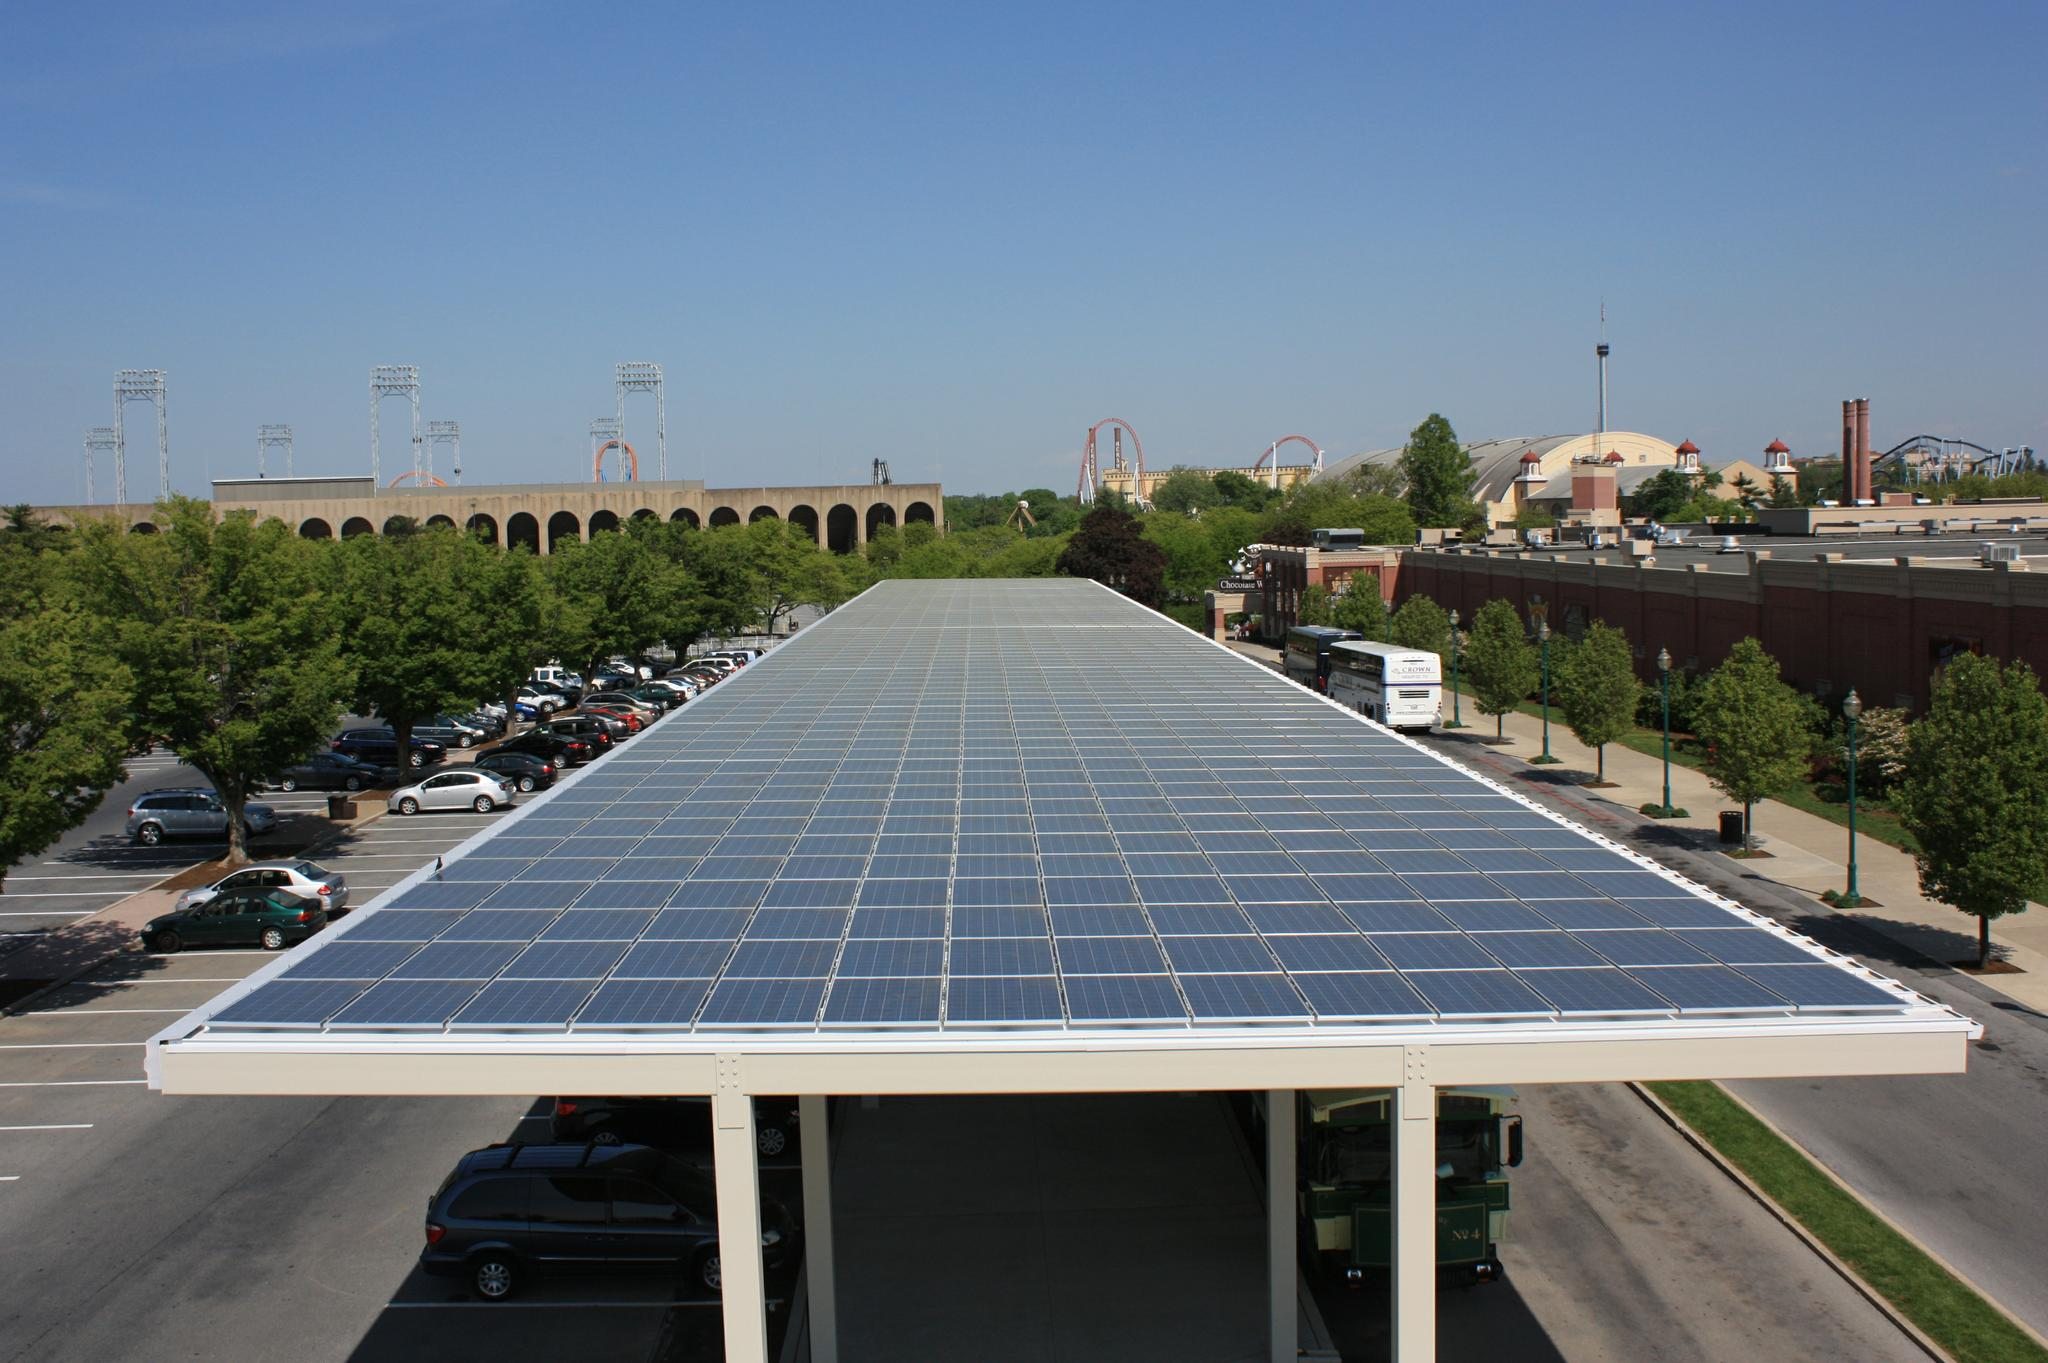 & Solar Canopies: Bring Solar Panels to Your Parking Lot | EnergySage